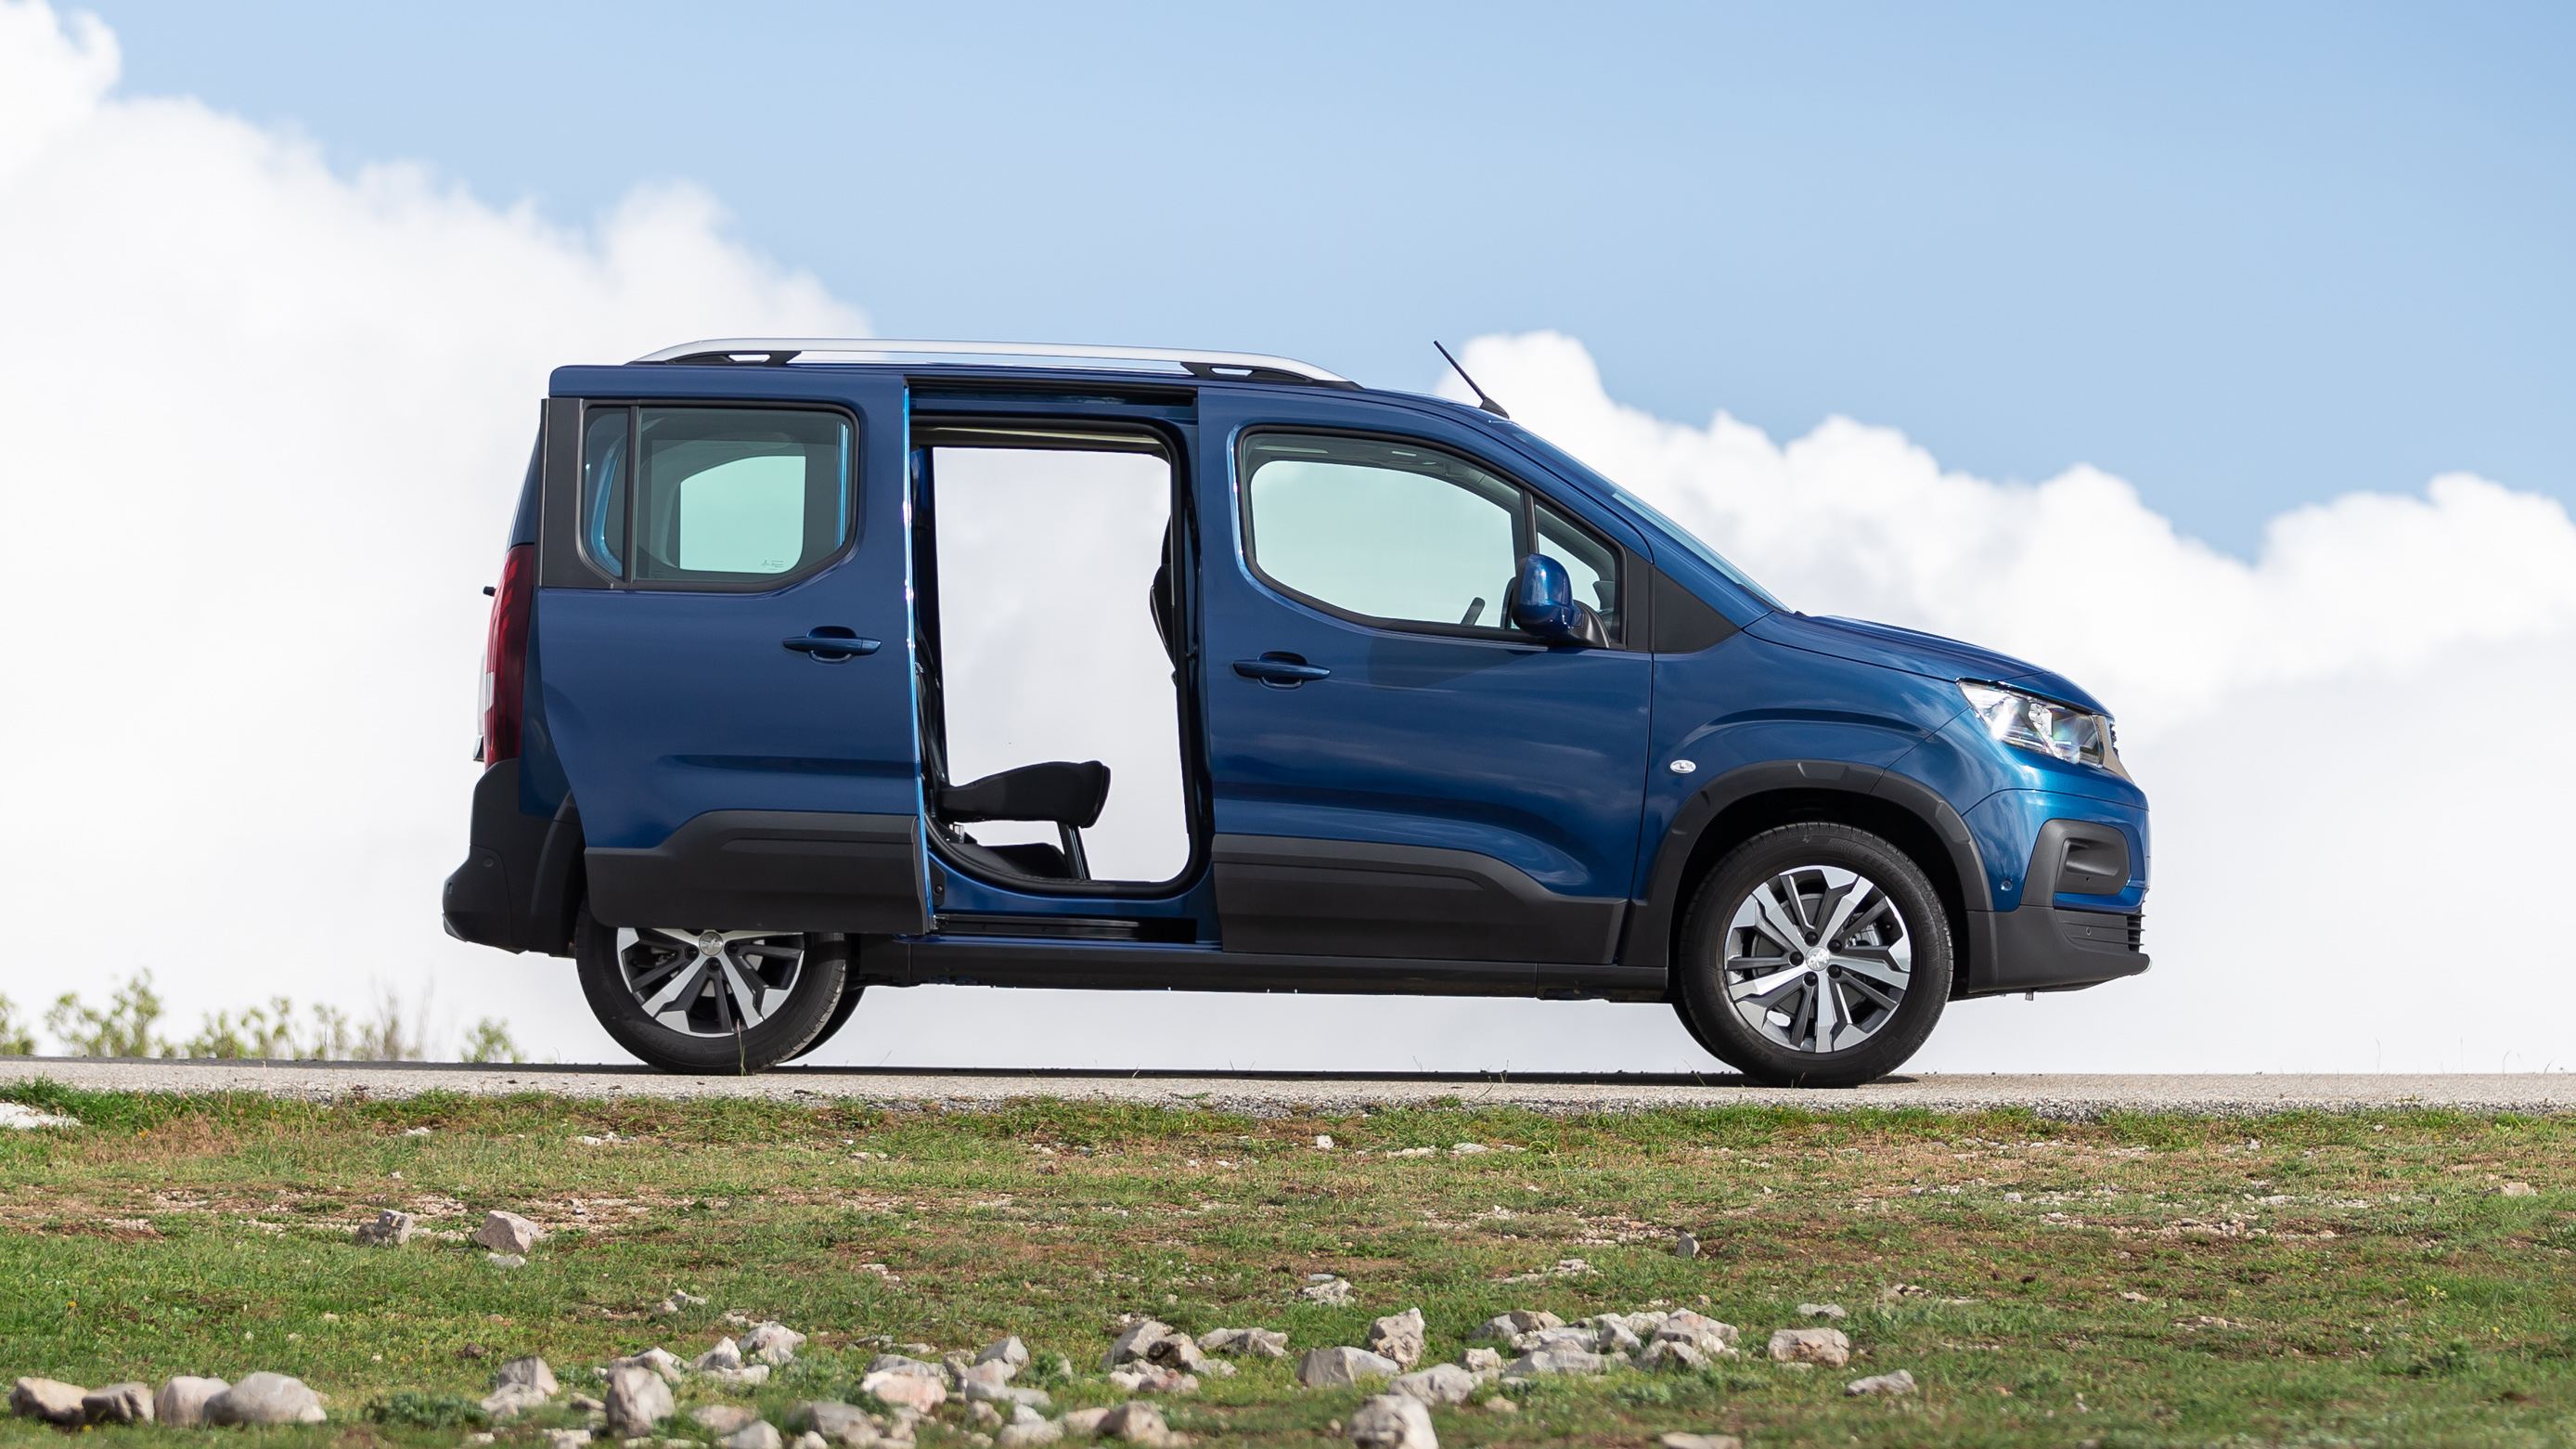 Raleigh Used Cars >> Peugeot Rifter review: new MPV tested | Top Gear